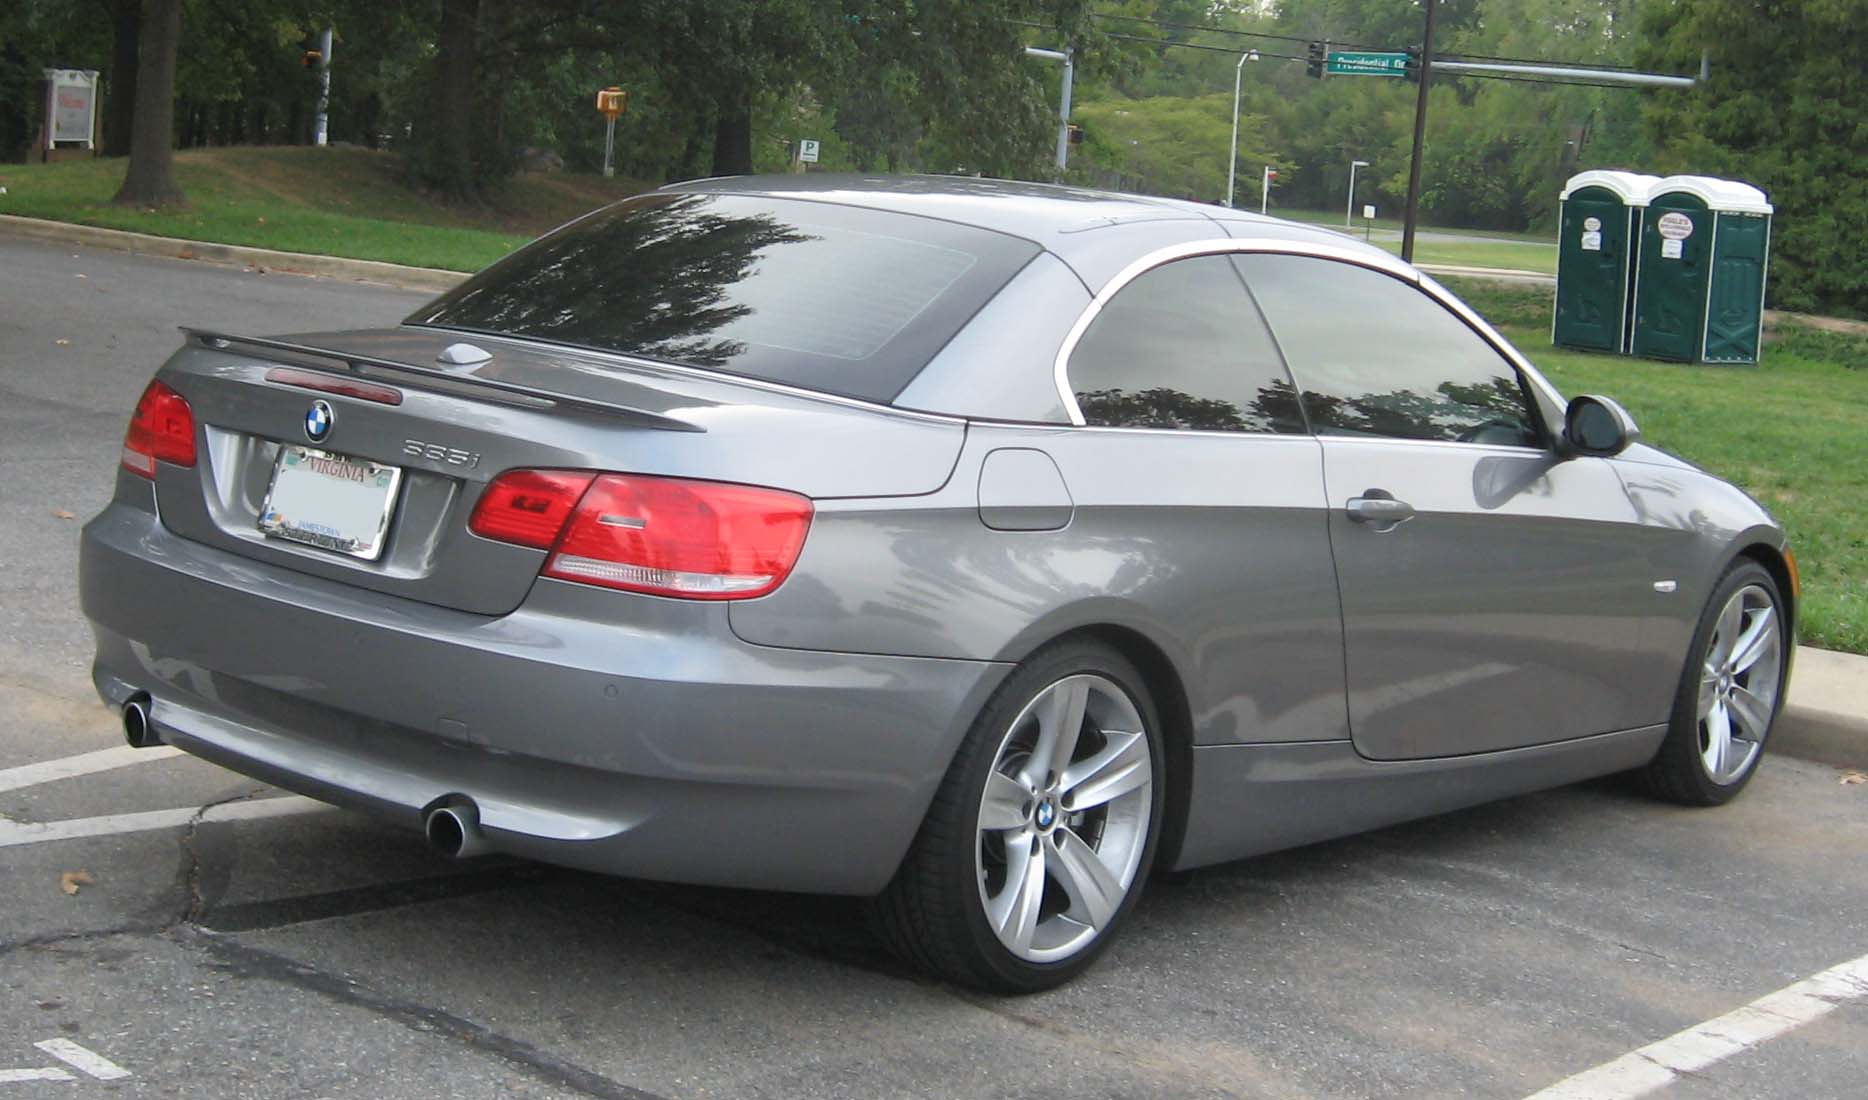 Bmw E90 Wiki >> File:BMW-335i-convertible-rear.jpg - Wikipedia